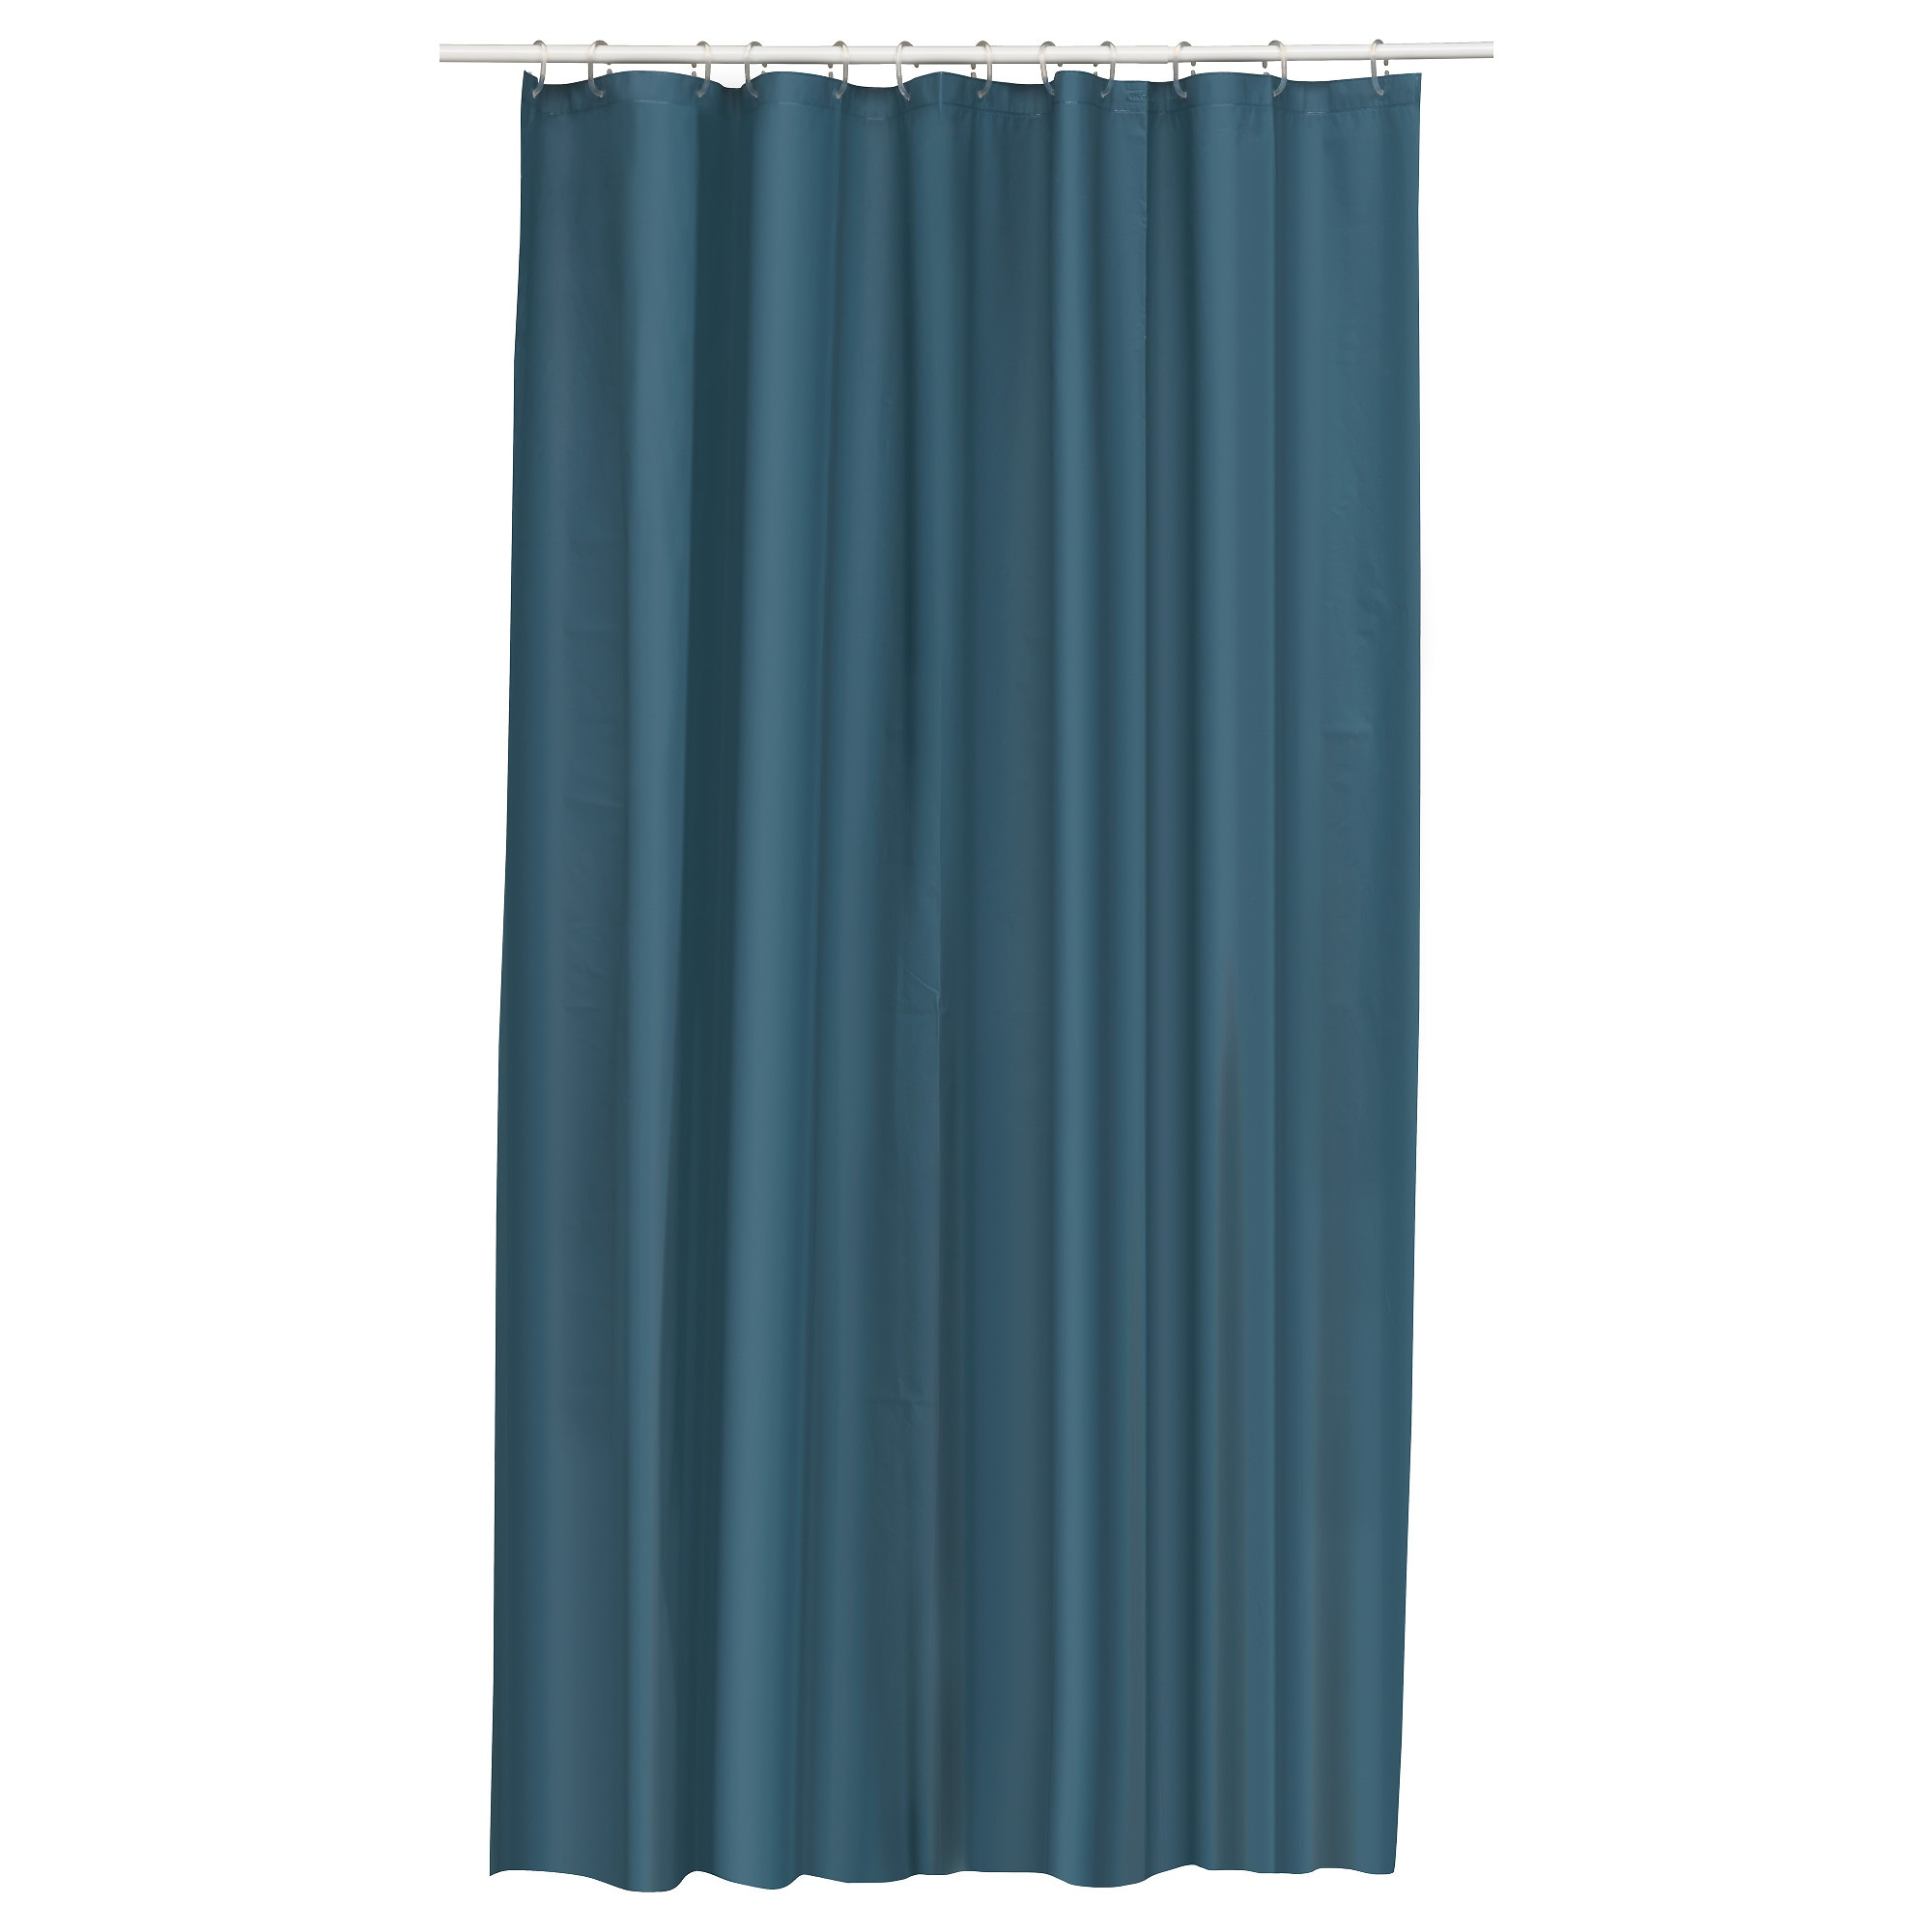 Bathroom plastic curtains - Eggegrund Shower Curtain Green Blue Length 71 Width 71 Area